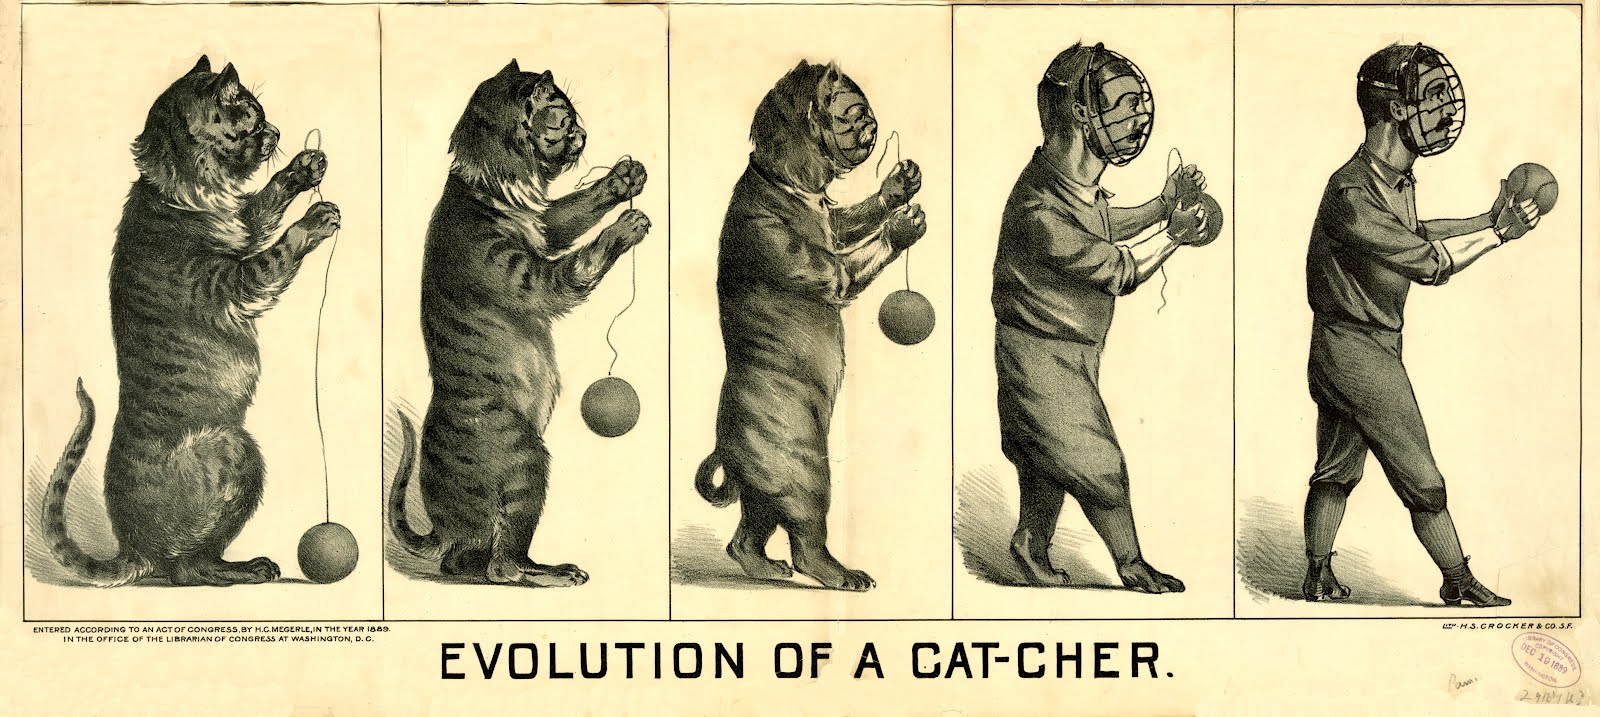 Evolution cat to catcher